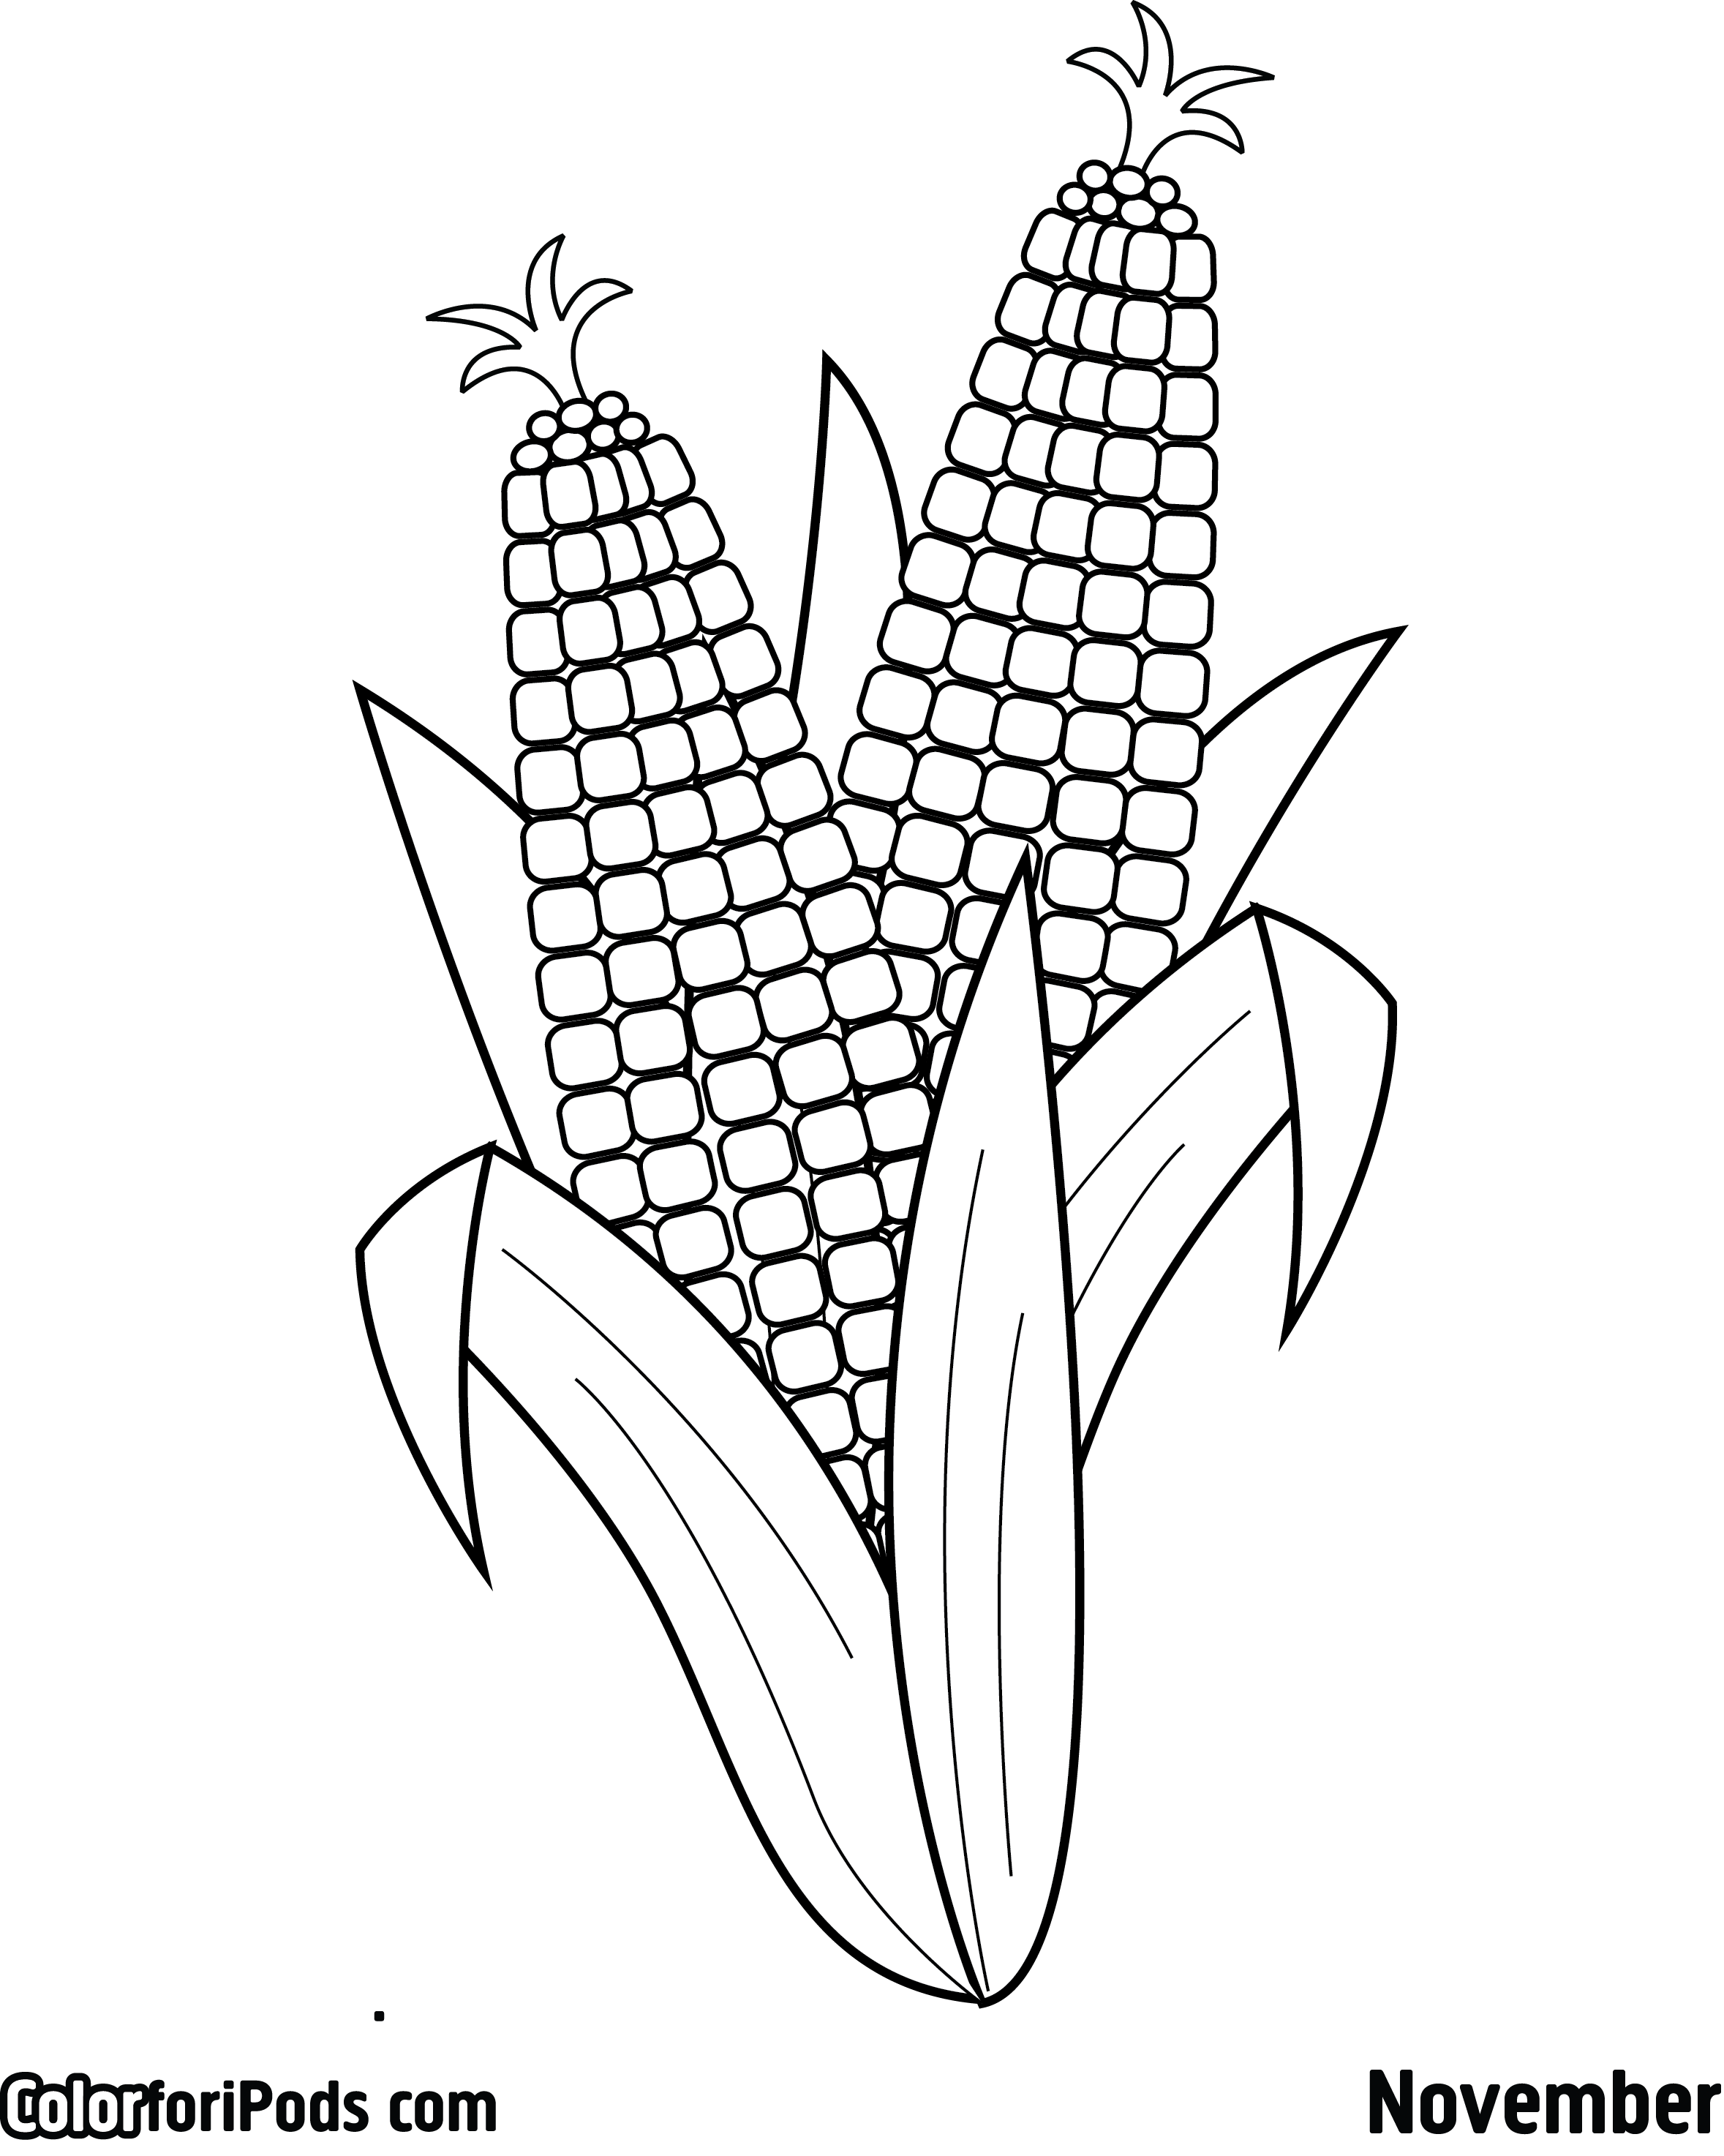 corn stalk template - corn on the cob coloring sheet sketch coloring page